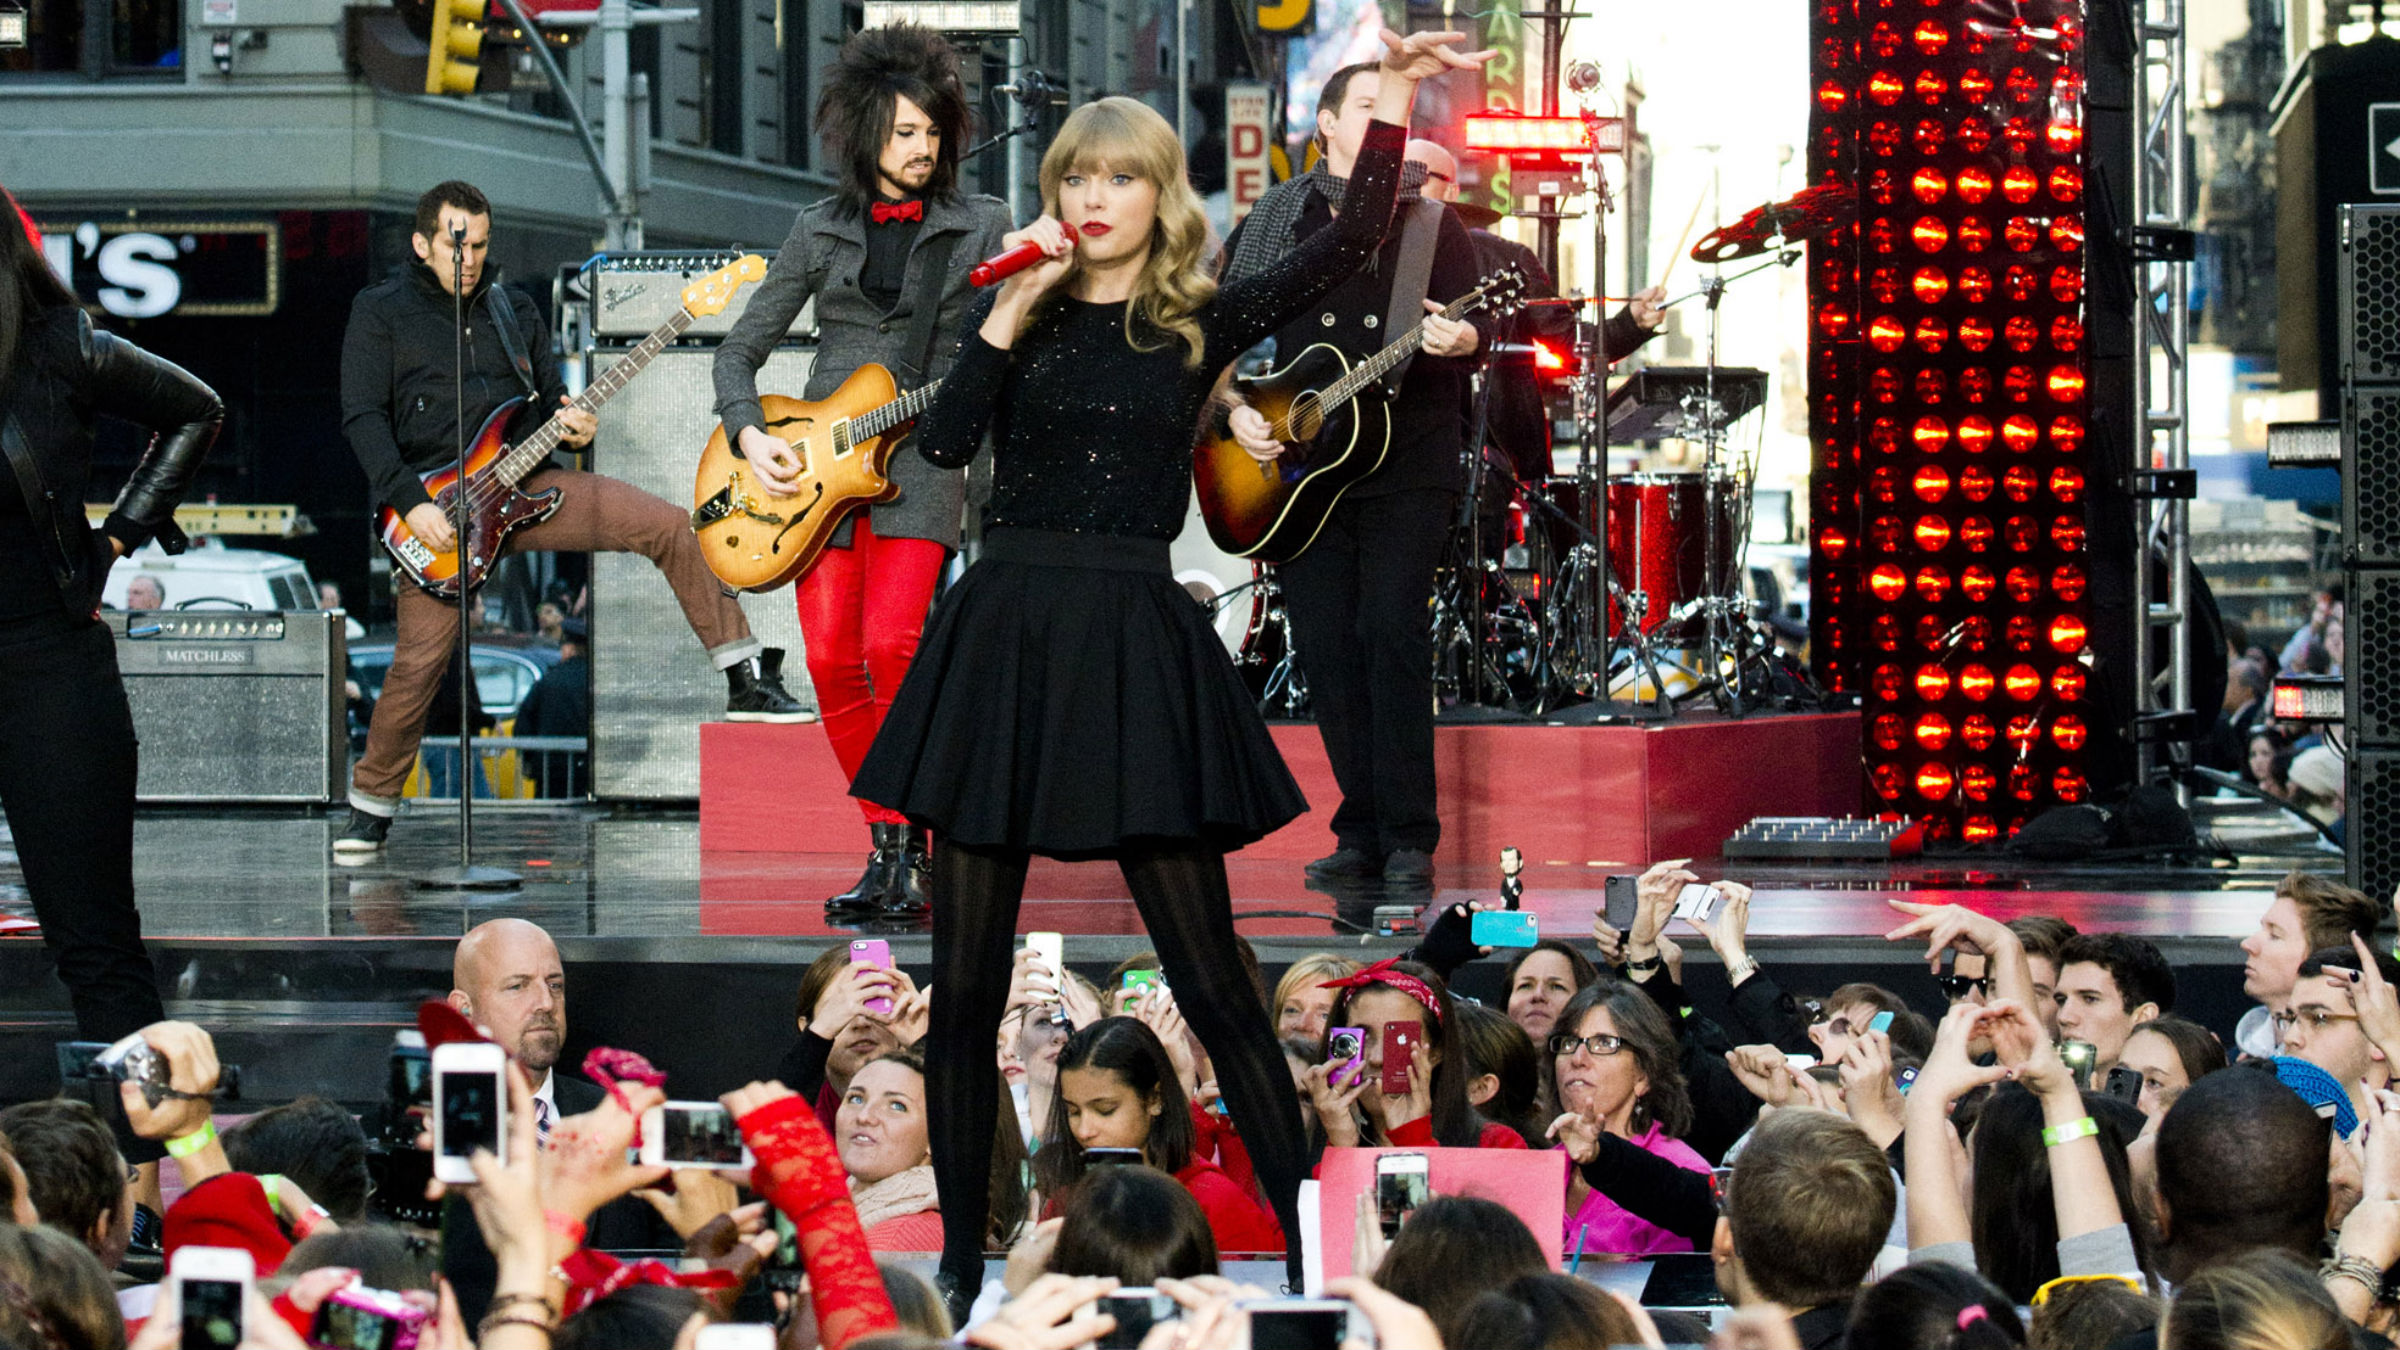 """Taylor Swift performs on ABC's """"Good Morning America"""" on Tuesday, Oct. 23, 2012 in New York. (Photo by Charles Sykes/Invision/AP)"""